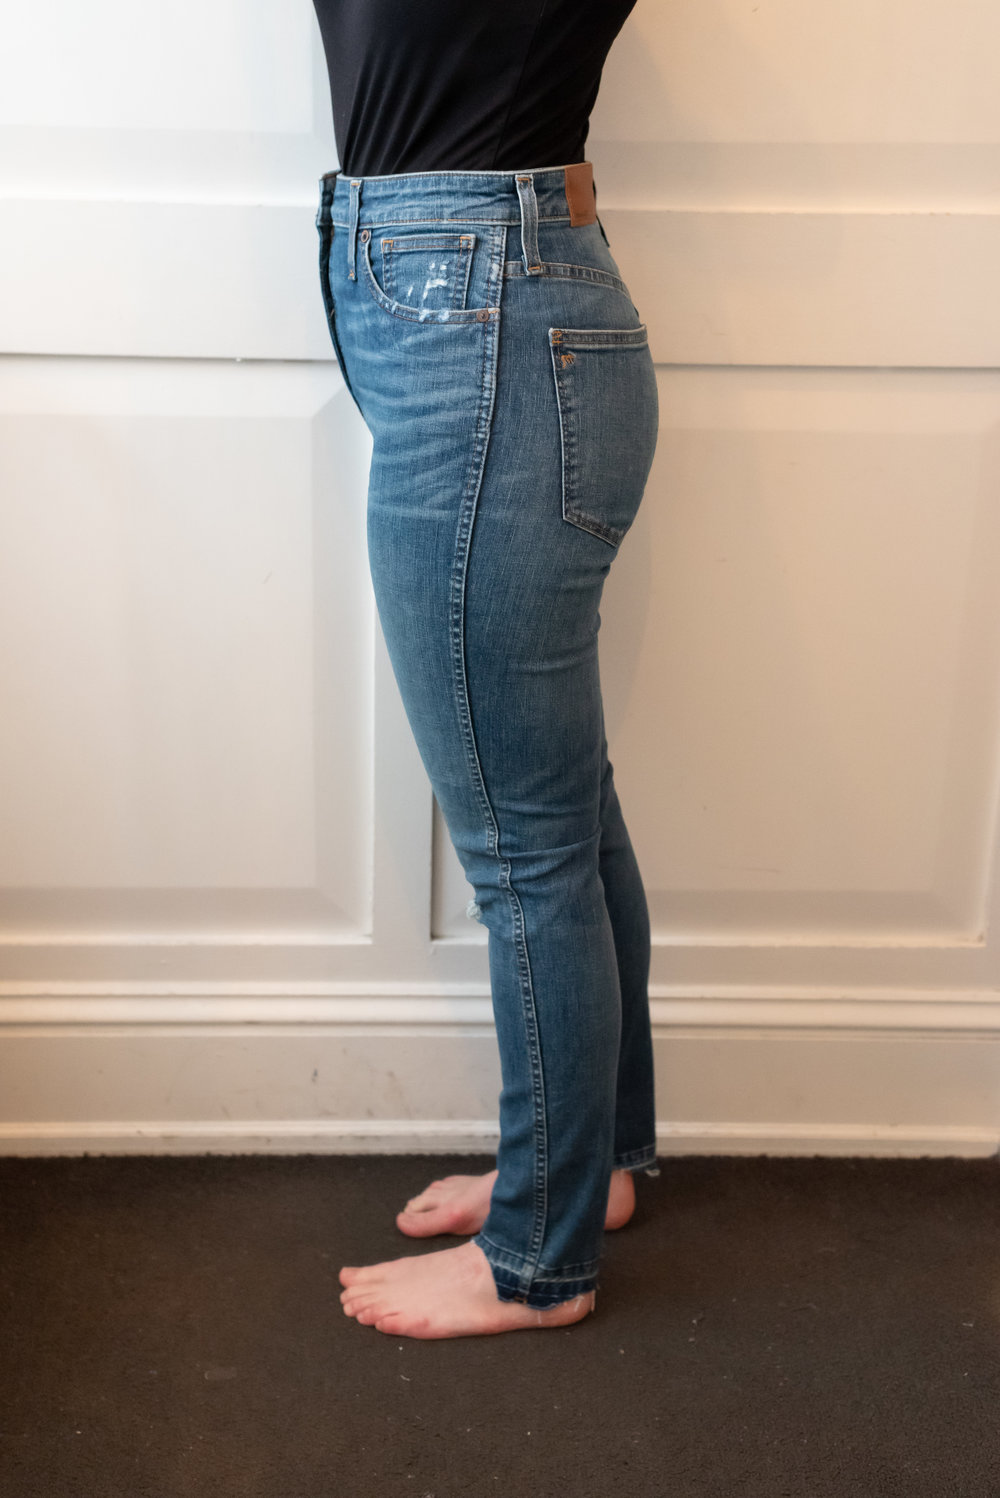 Madewell Curvy High Rise Skinny Jeans - Size 28 - Side View